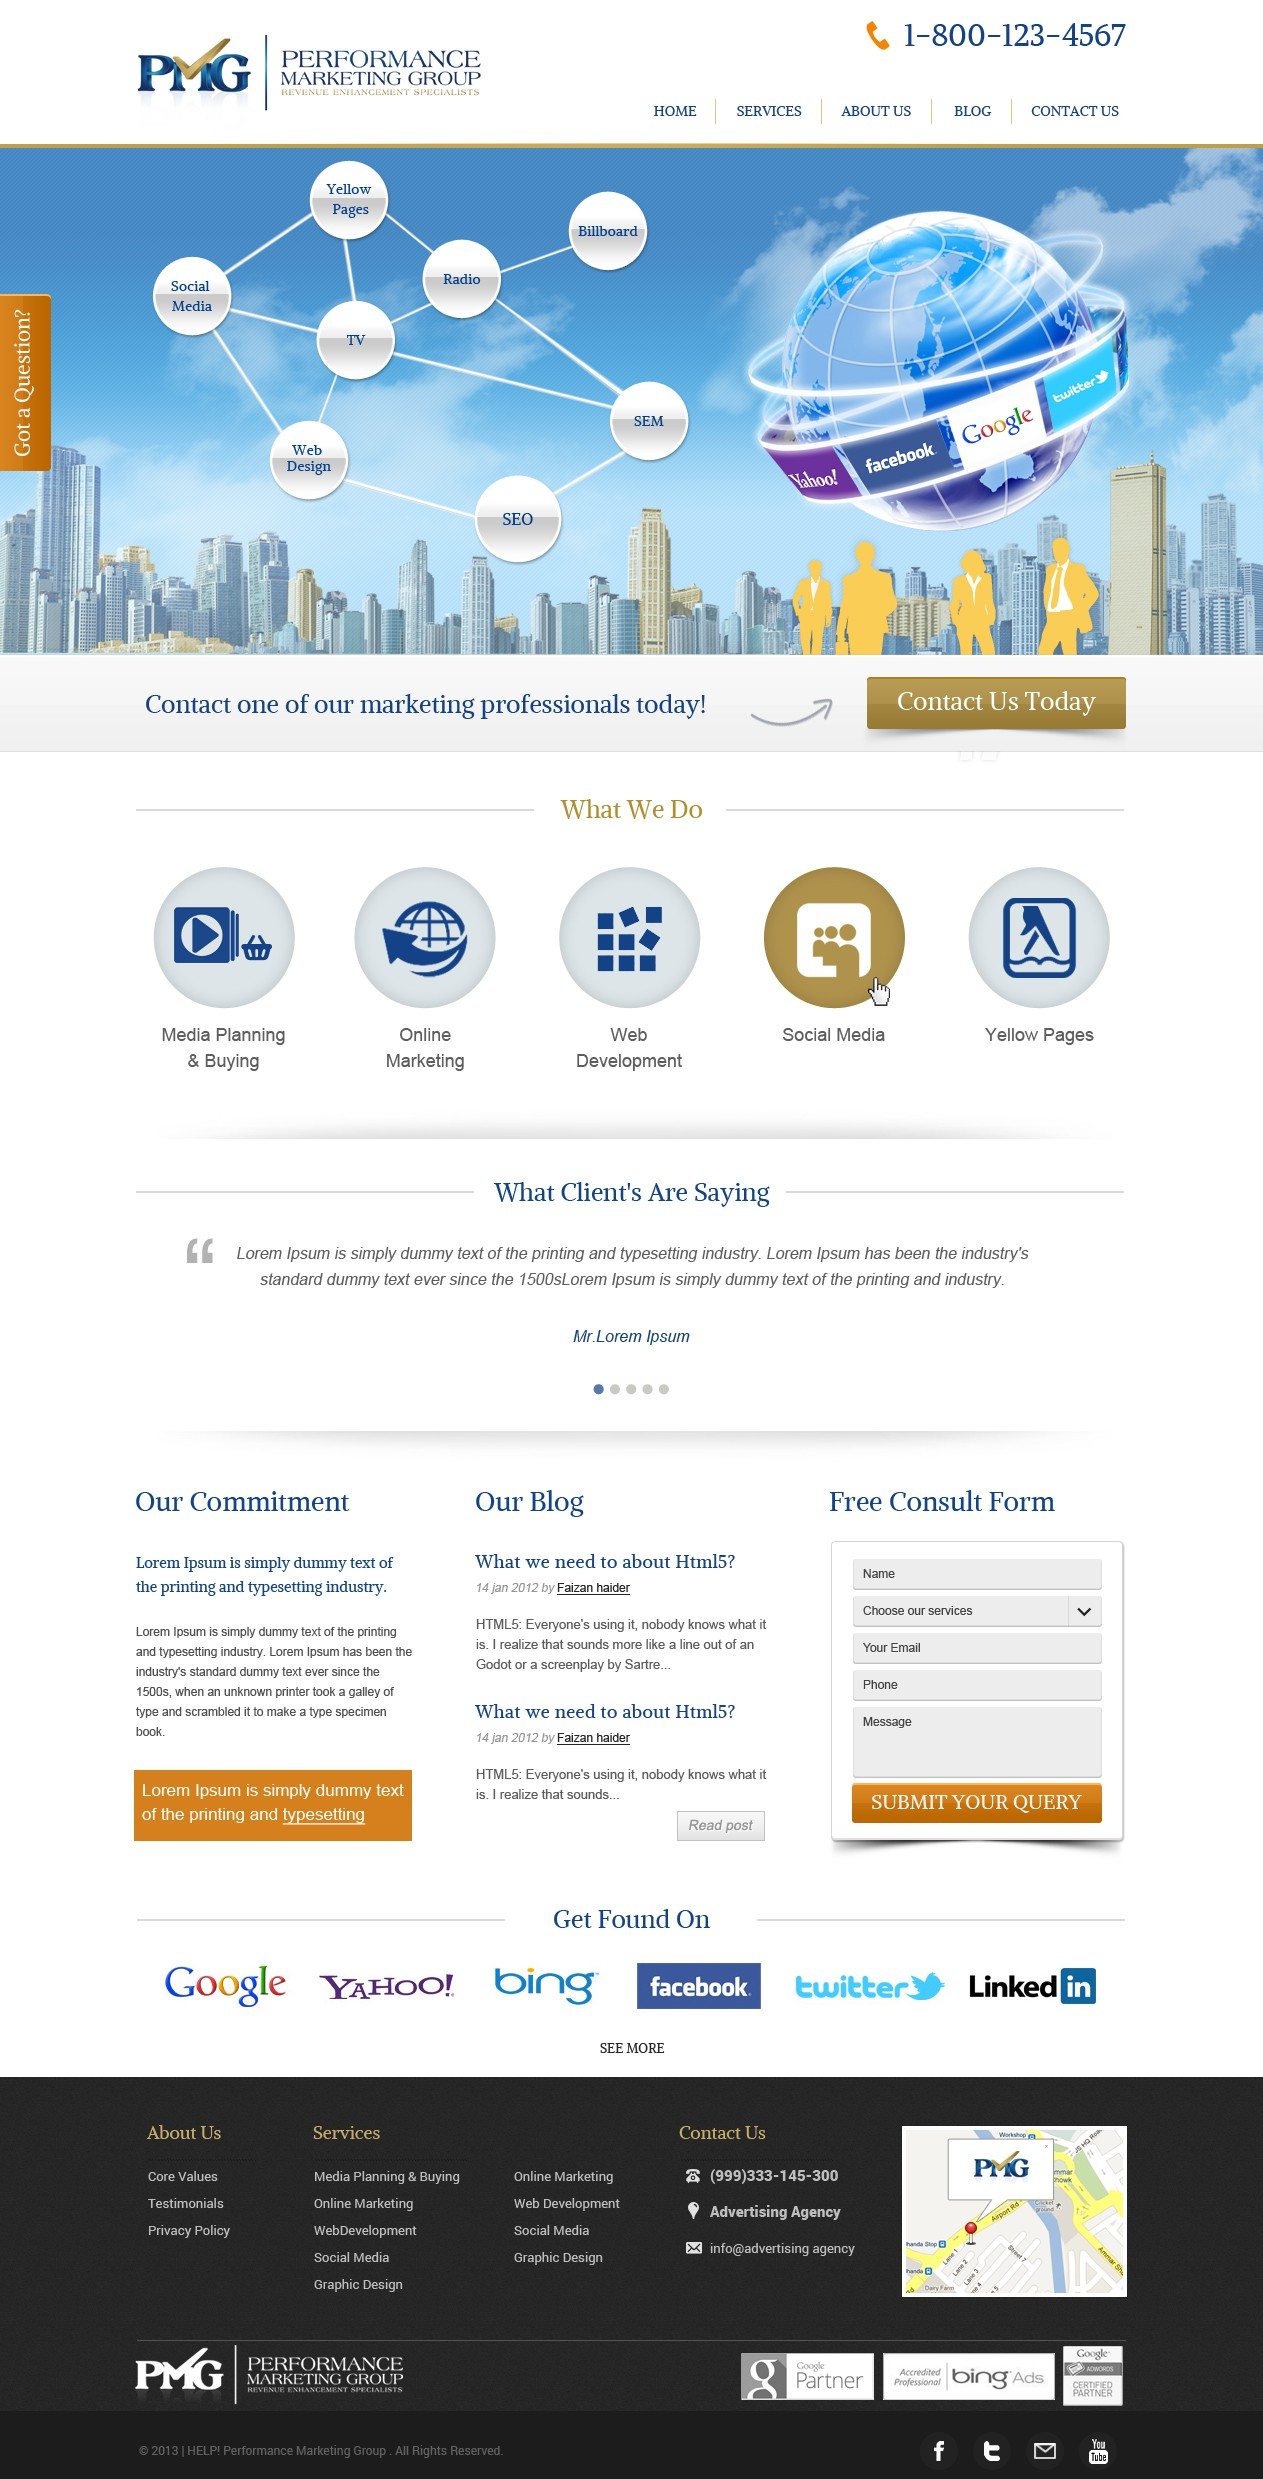 Help HELP! Performance Marketing Group with a new website design